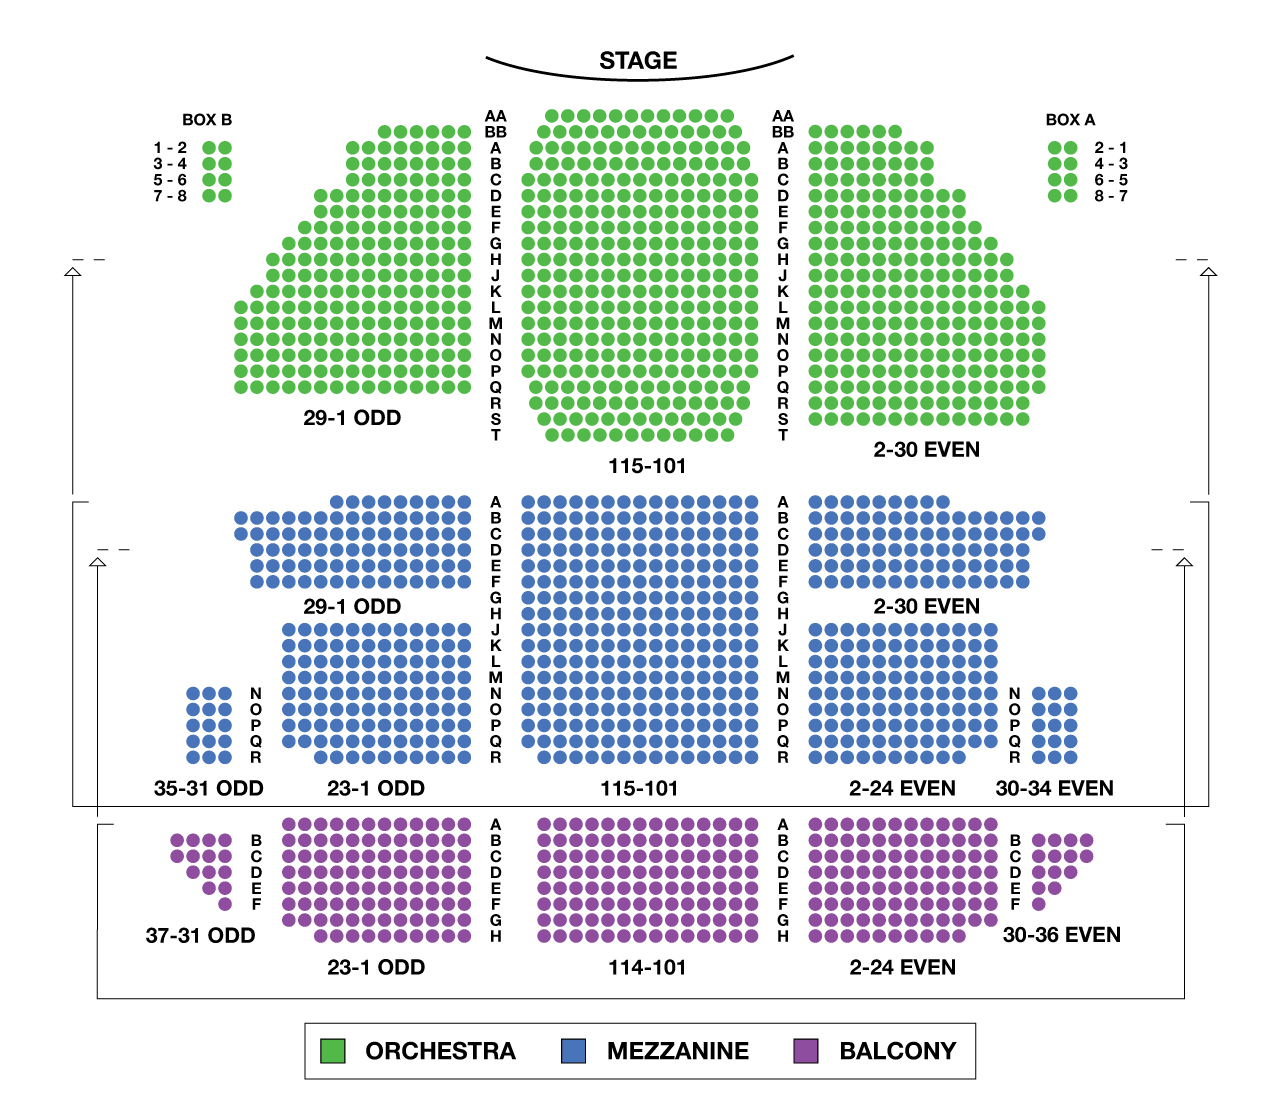 St James Theatre Large Broadway Seating Charts